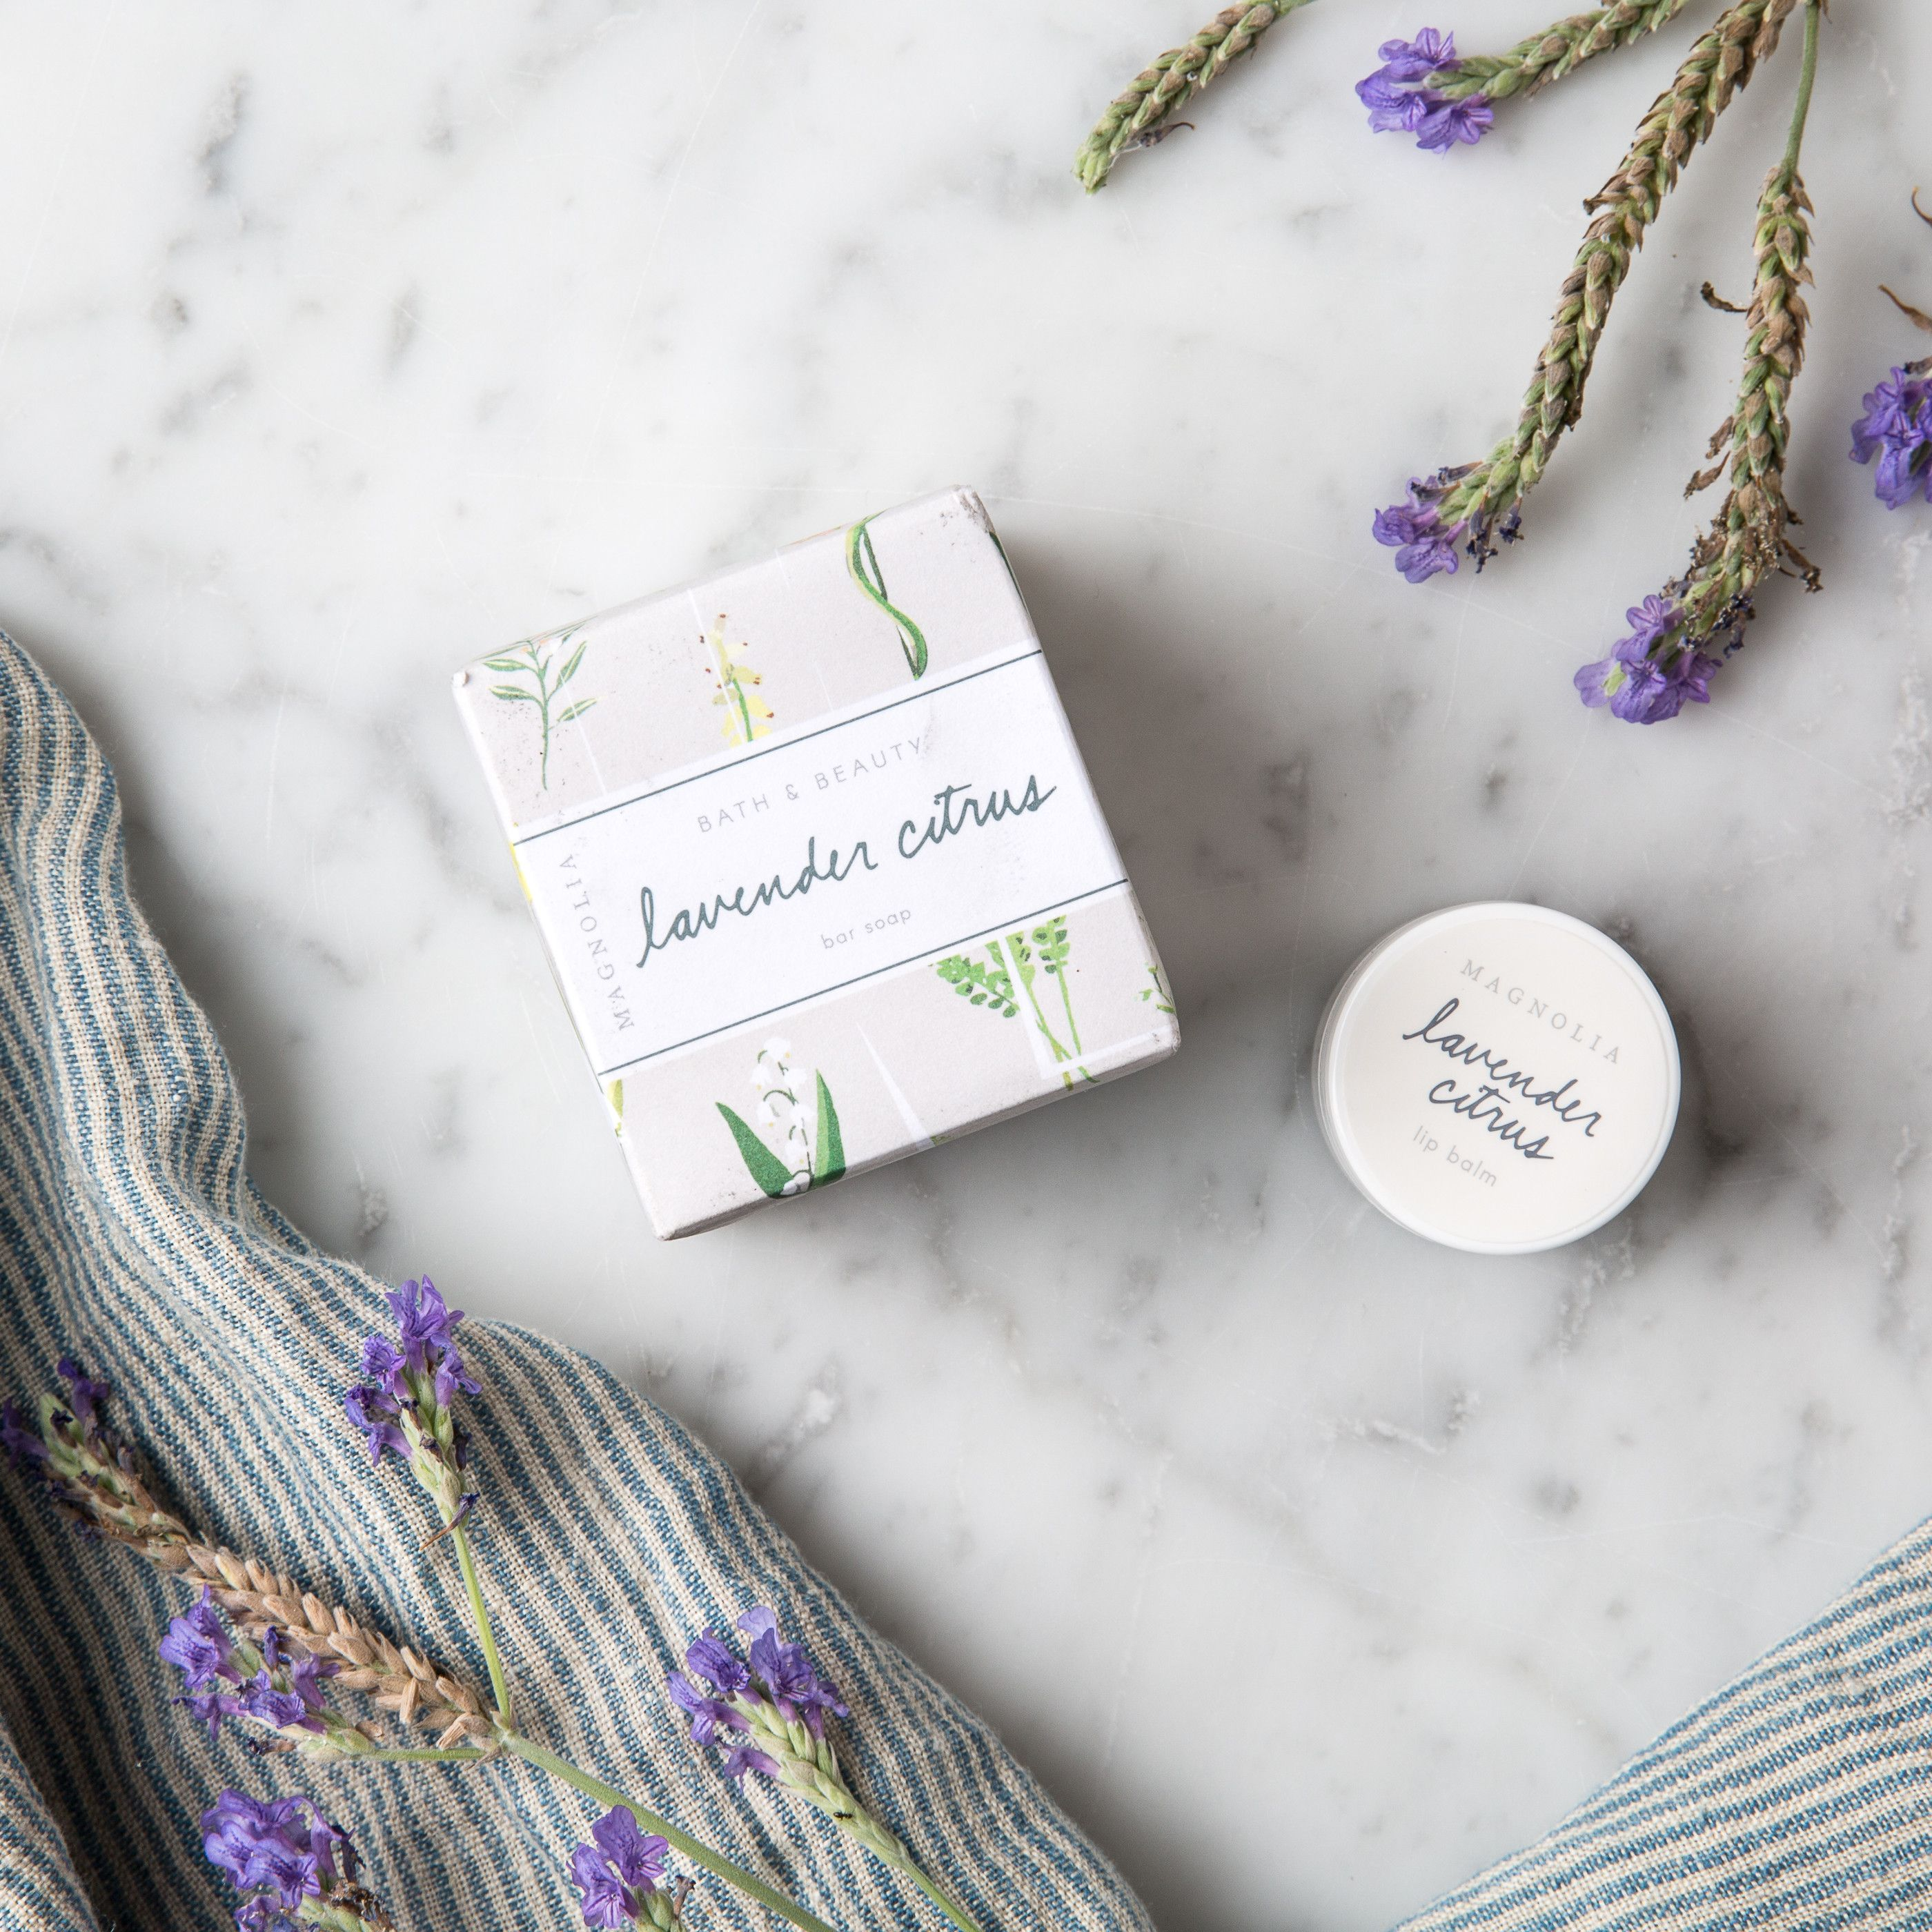 Magnolia bath and beauty collection bar soap